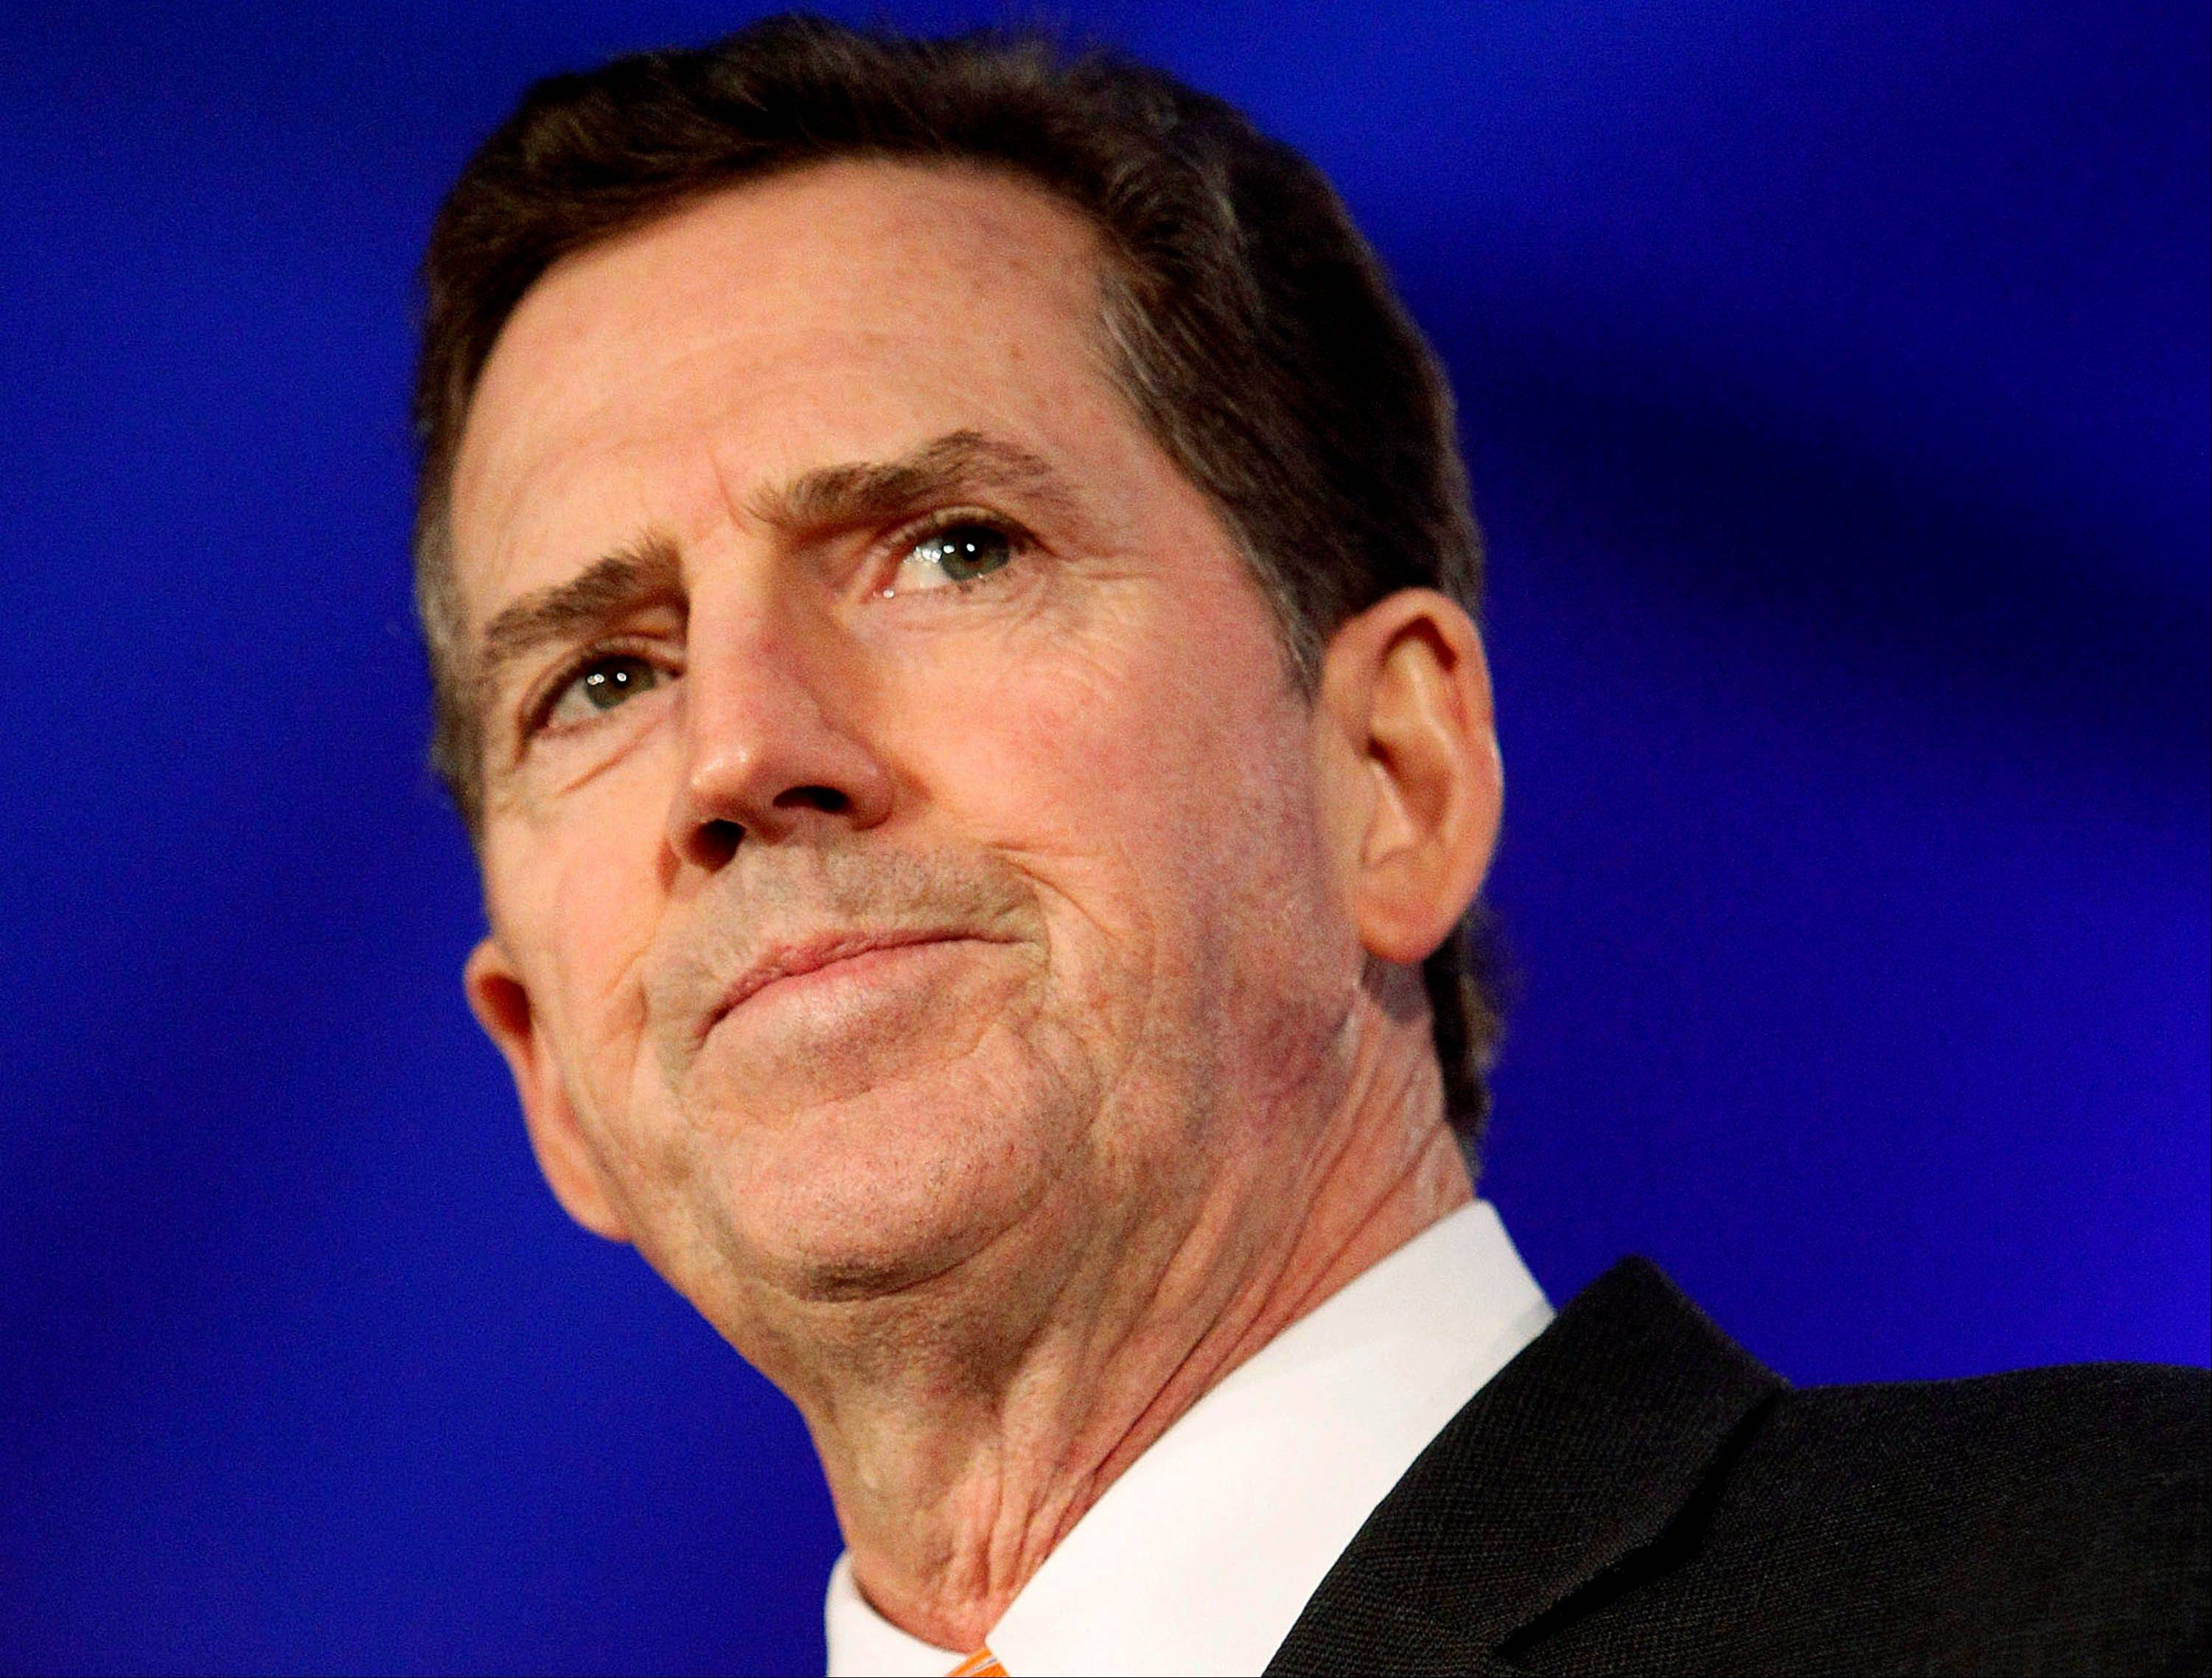 Sen. Jim DeMint, a South Carolina Republican, warned the combination of big government and big industry is creating a nation that is becoming �too big to succeed.� (AP Photo/Patrick Semansky, File)